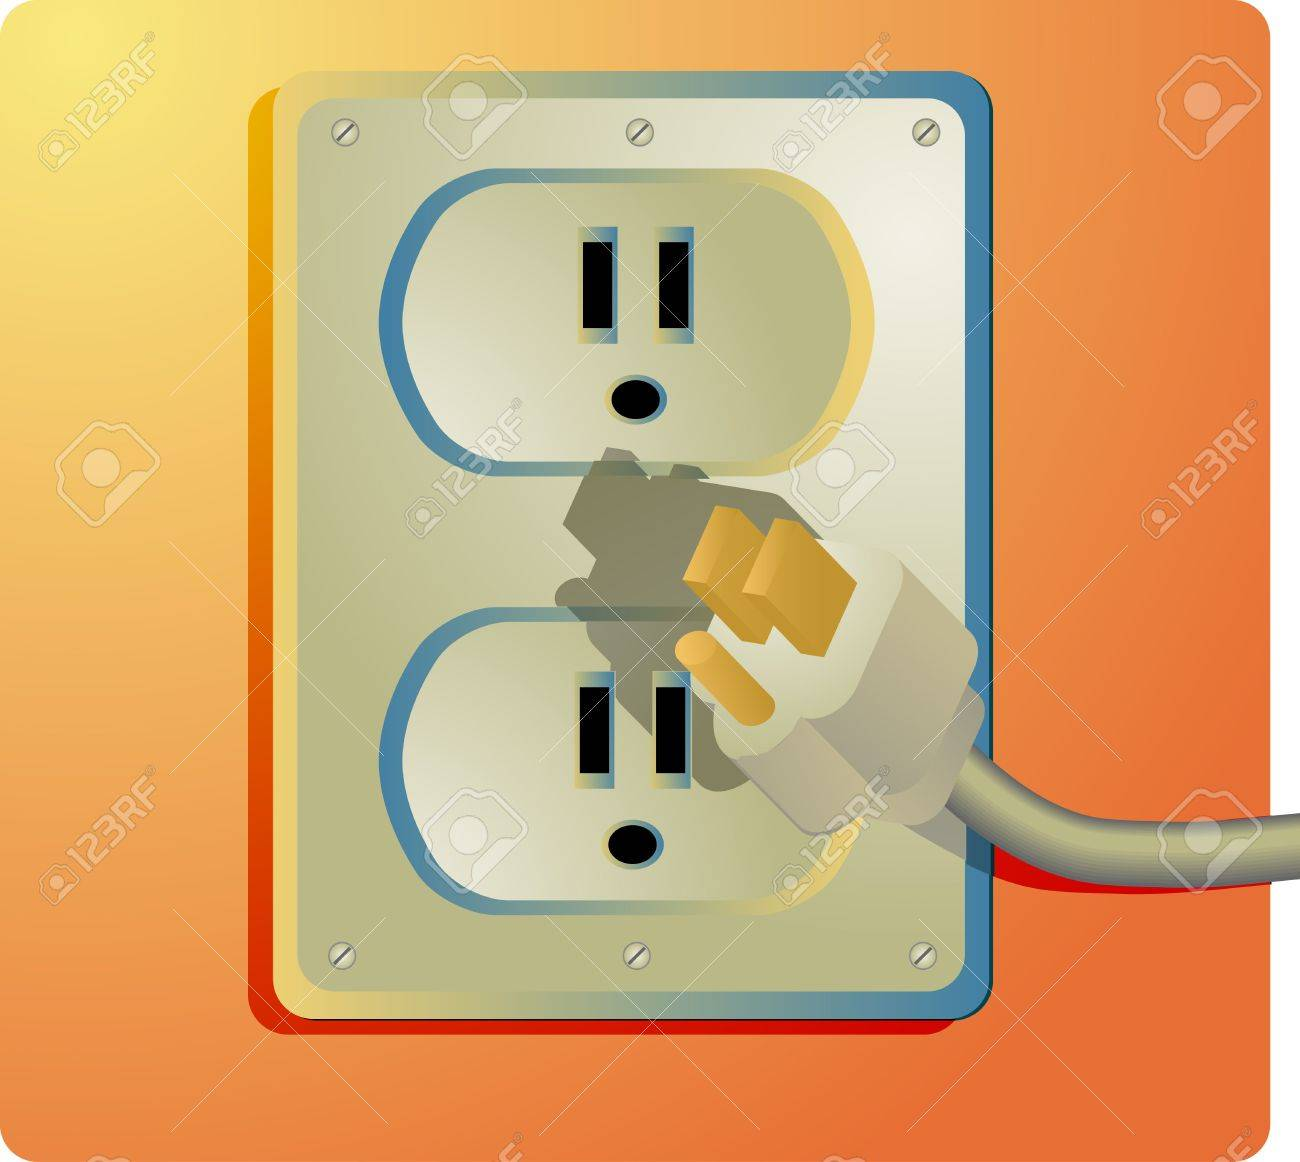 Electrical Outlet And Plug, Wall Socket US Style Stock Photo ...